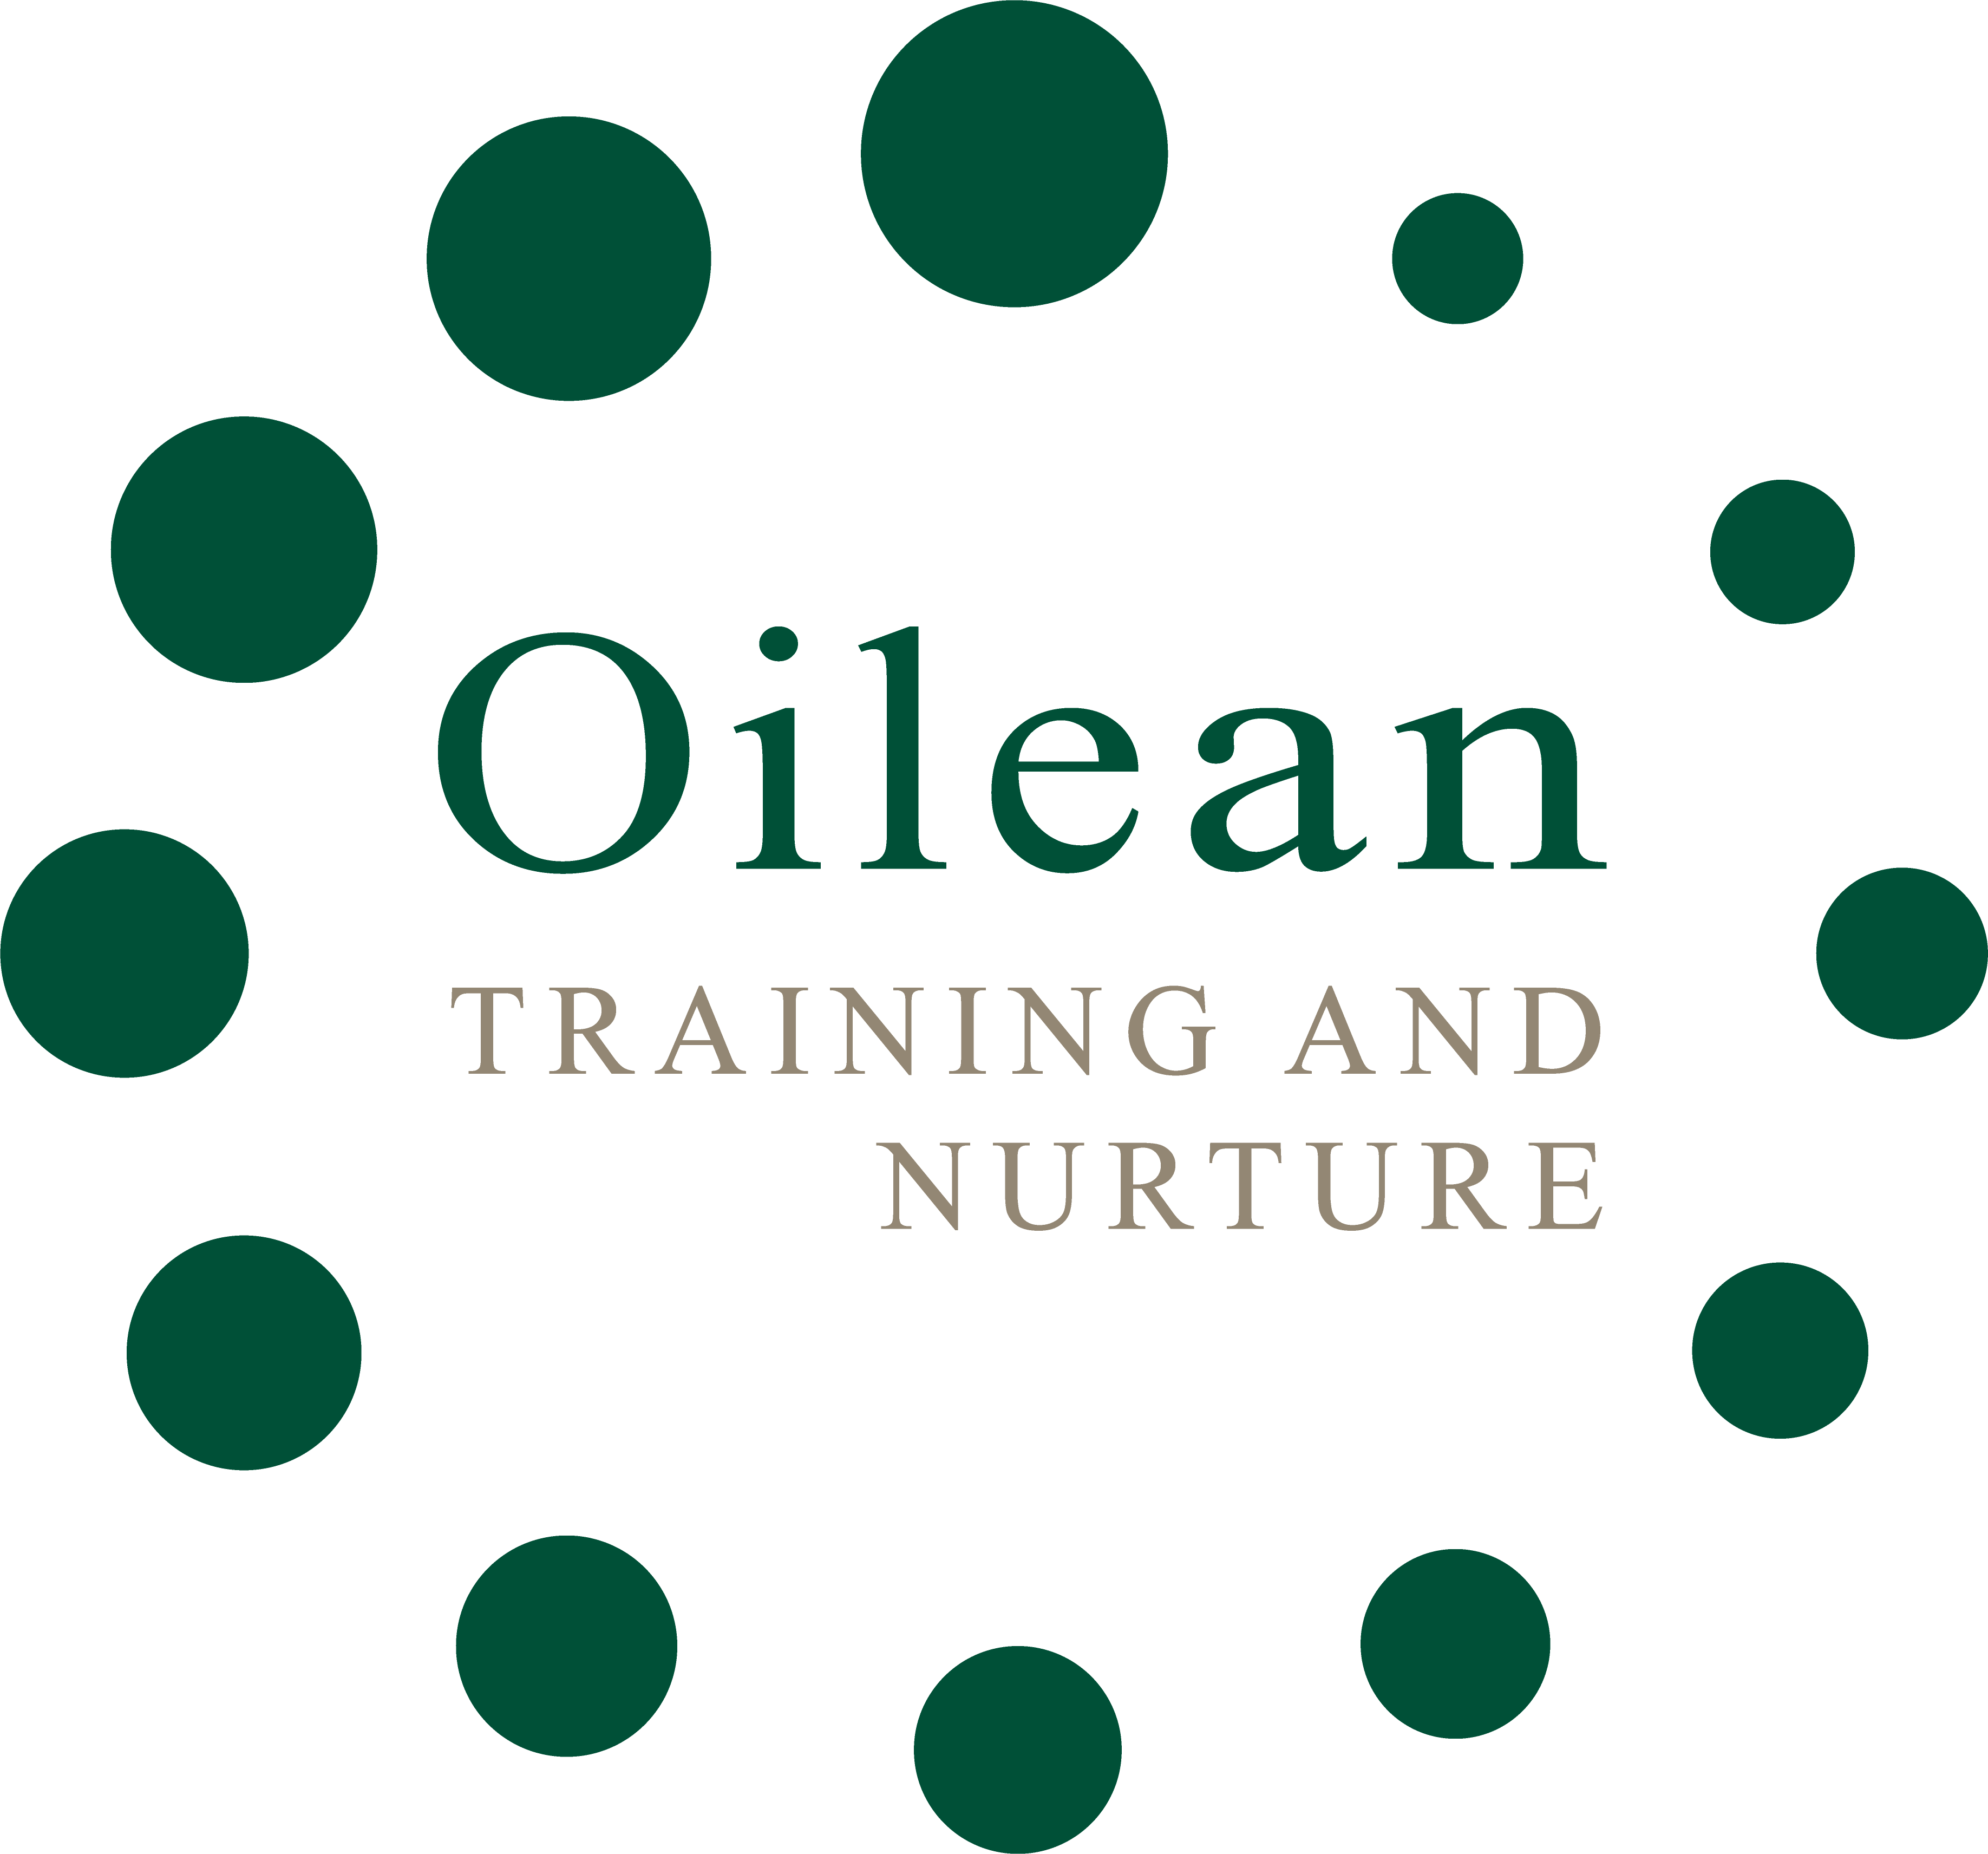 Oilean: Training and Nurture